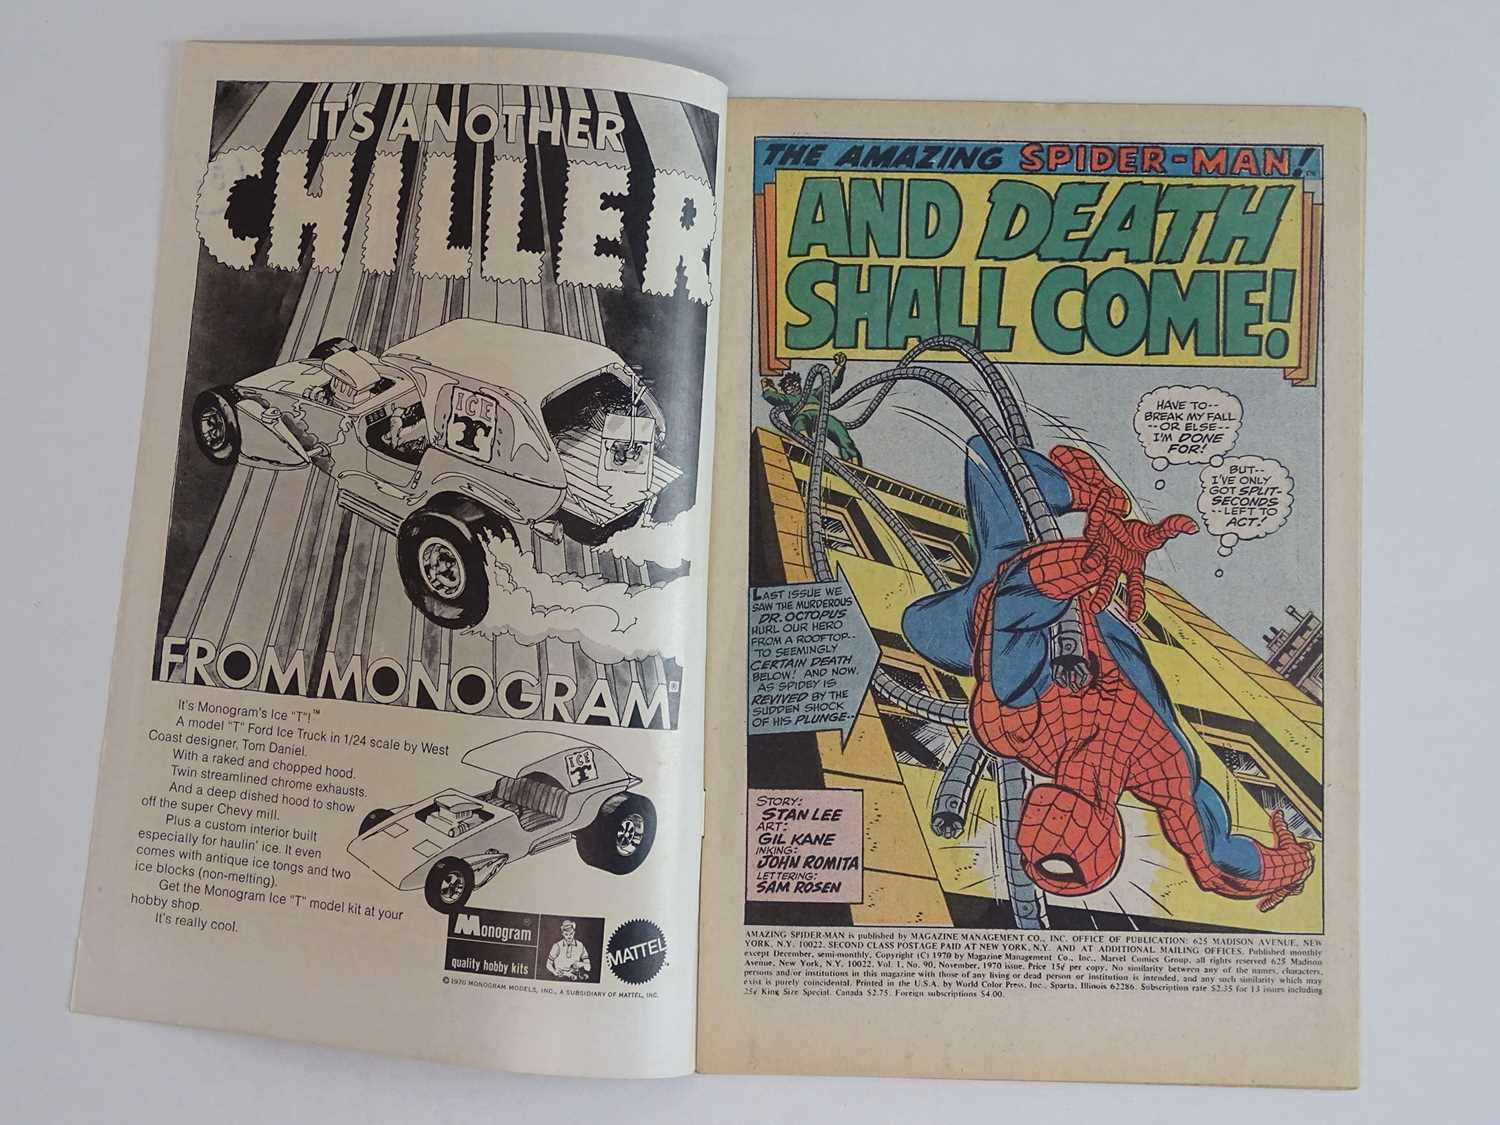 AMAZING SPIDER-MAN # 90 - (1970 - MARVEL - Uk Cover Price) - 'Death' of Captain Stacy + Doctor - Image 3 of 9